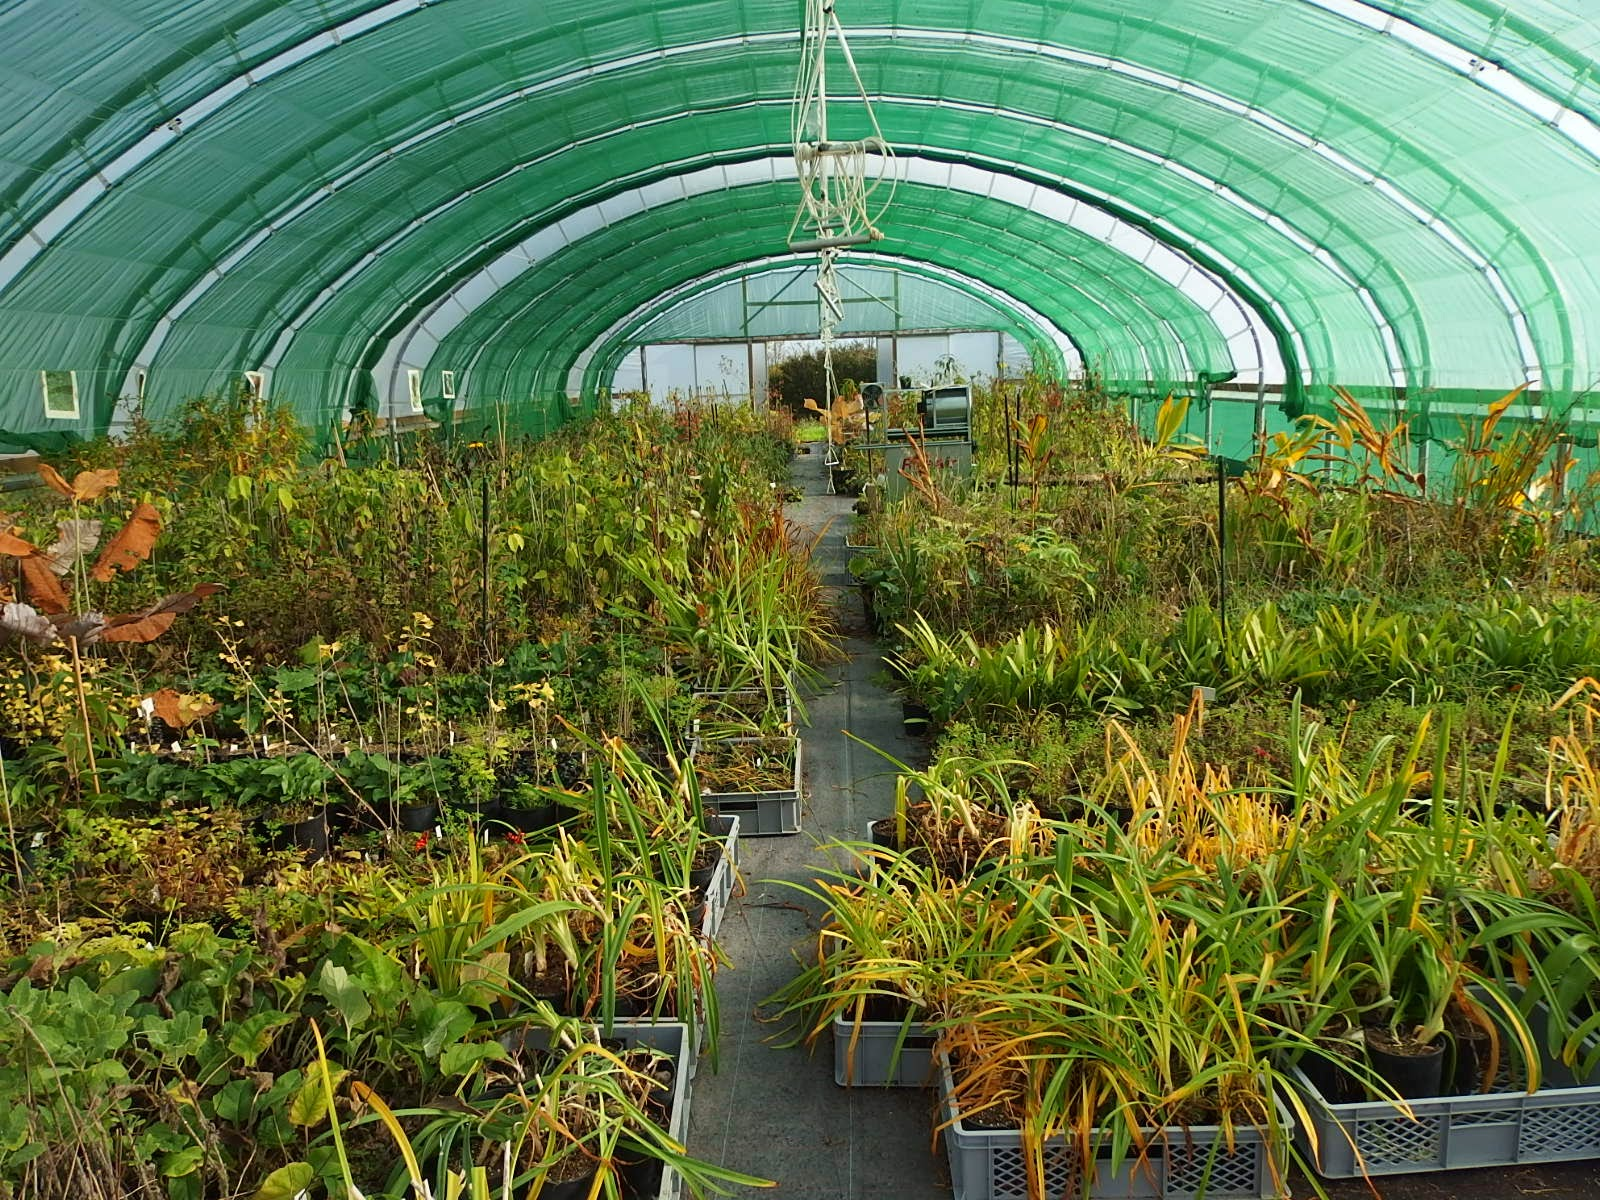 View of another polytunnel